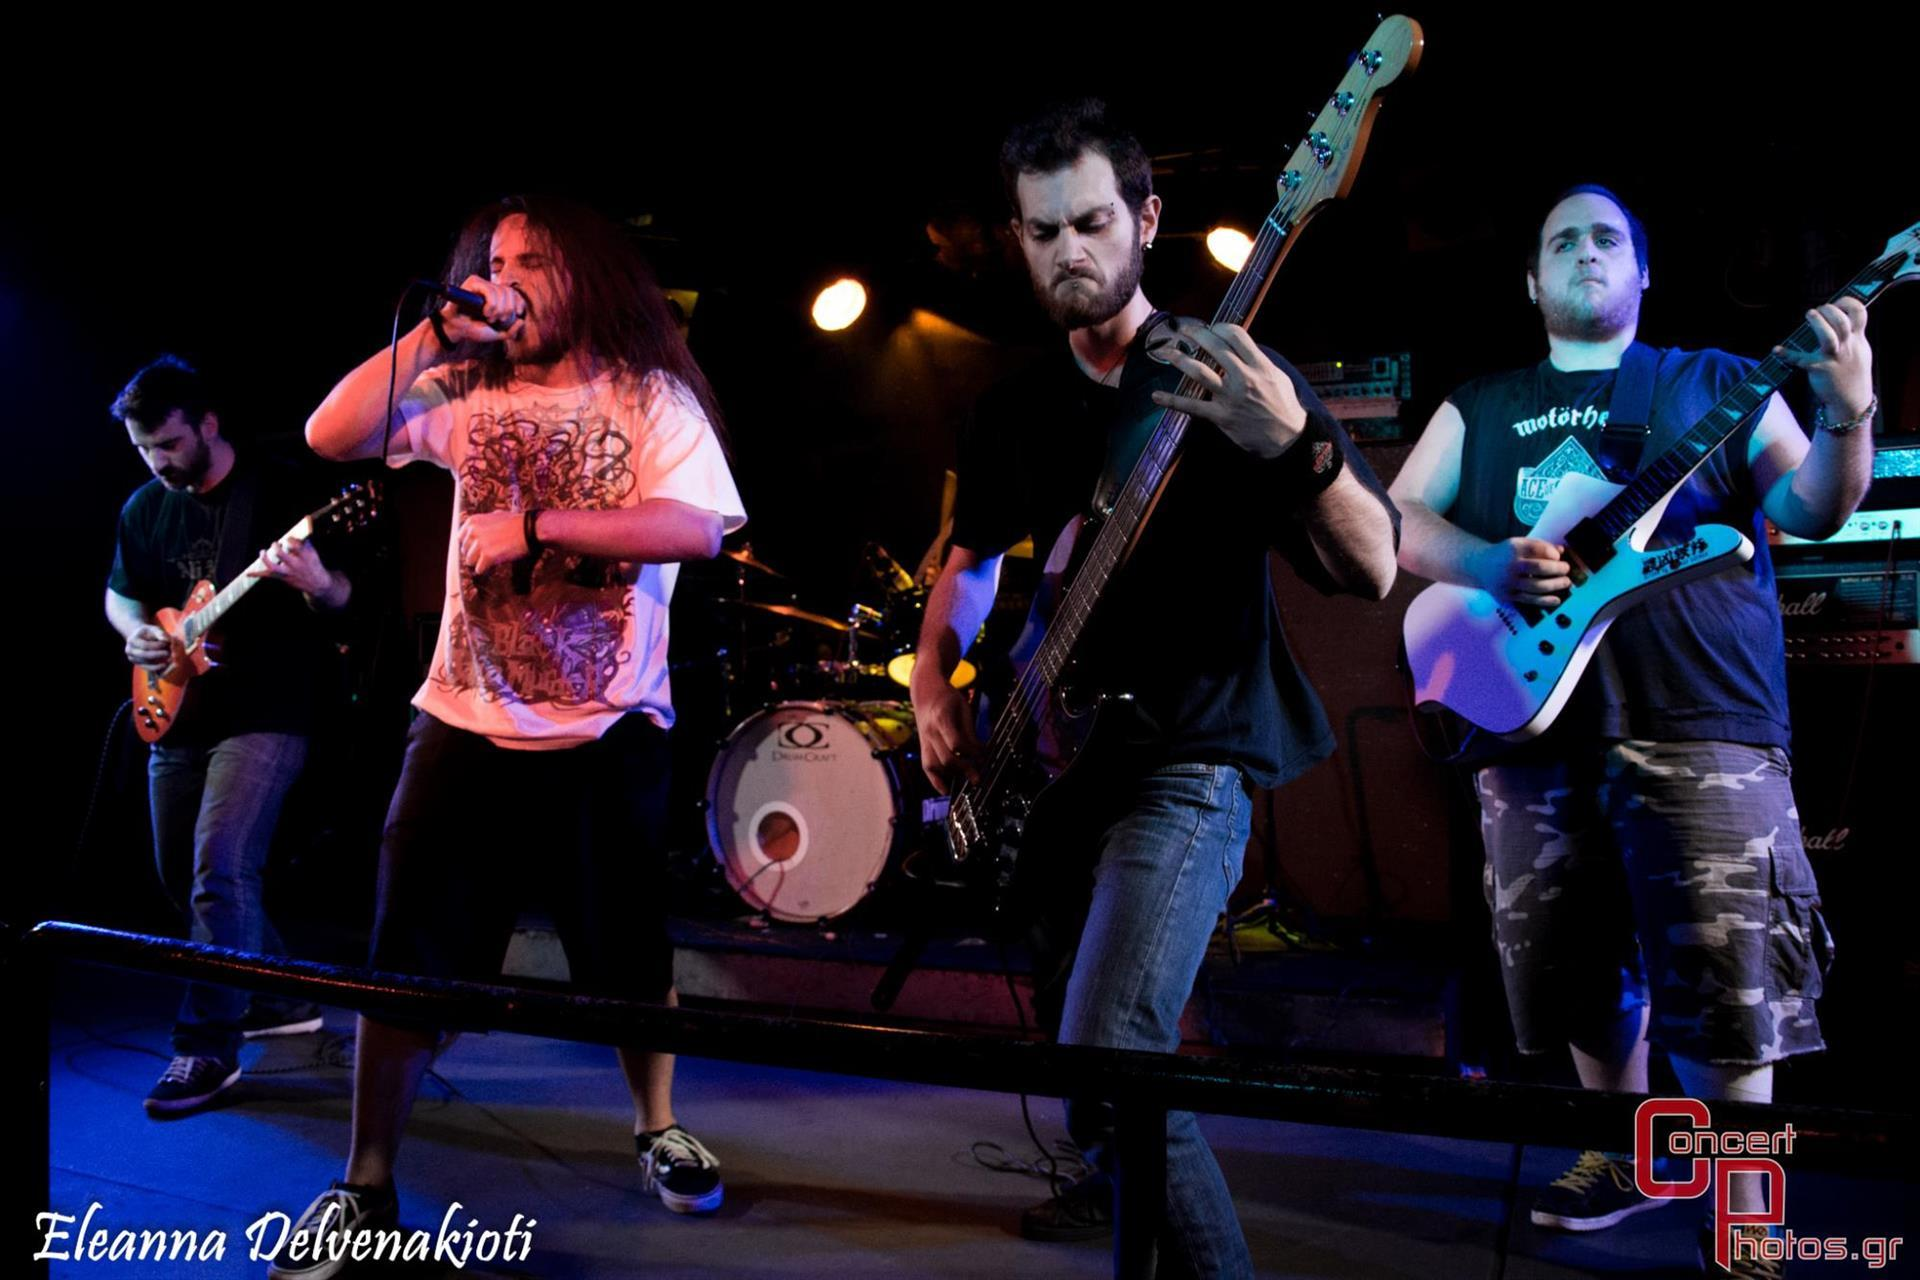 Battle Of The Bands Athens - Leg 4-test photographer:  - Battle Of The Bands-20150208-232432